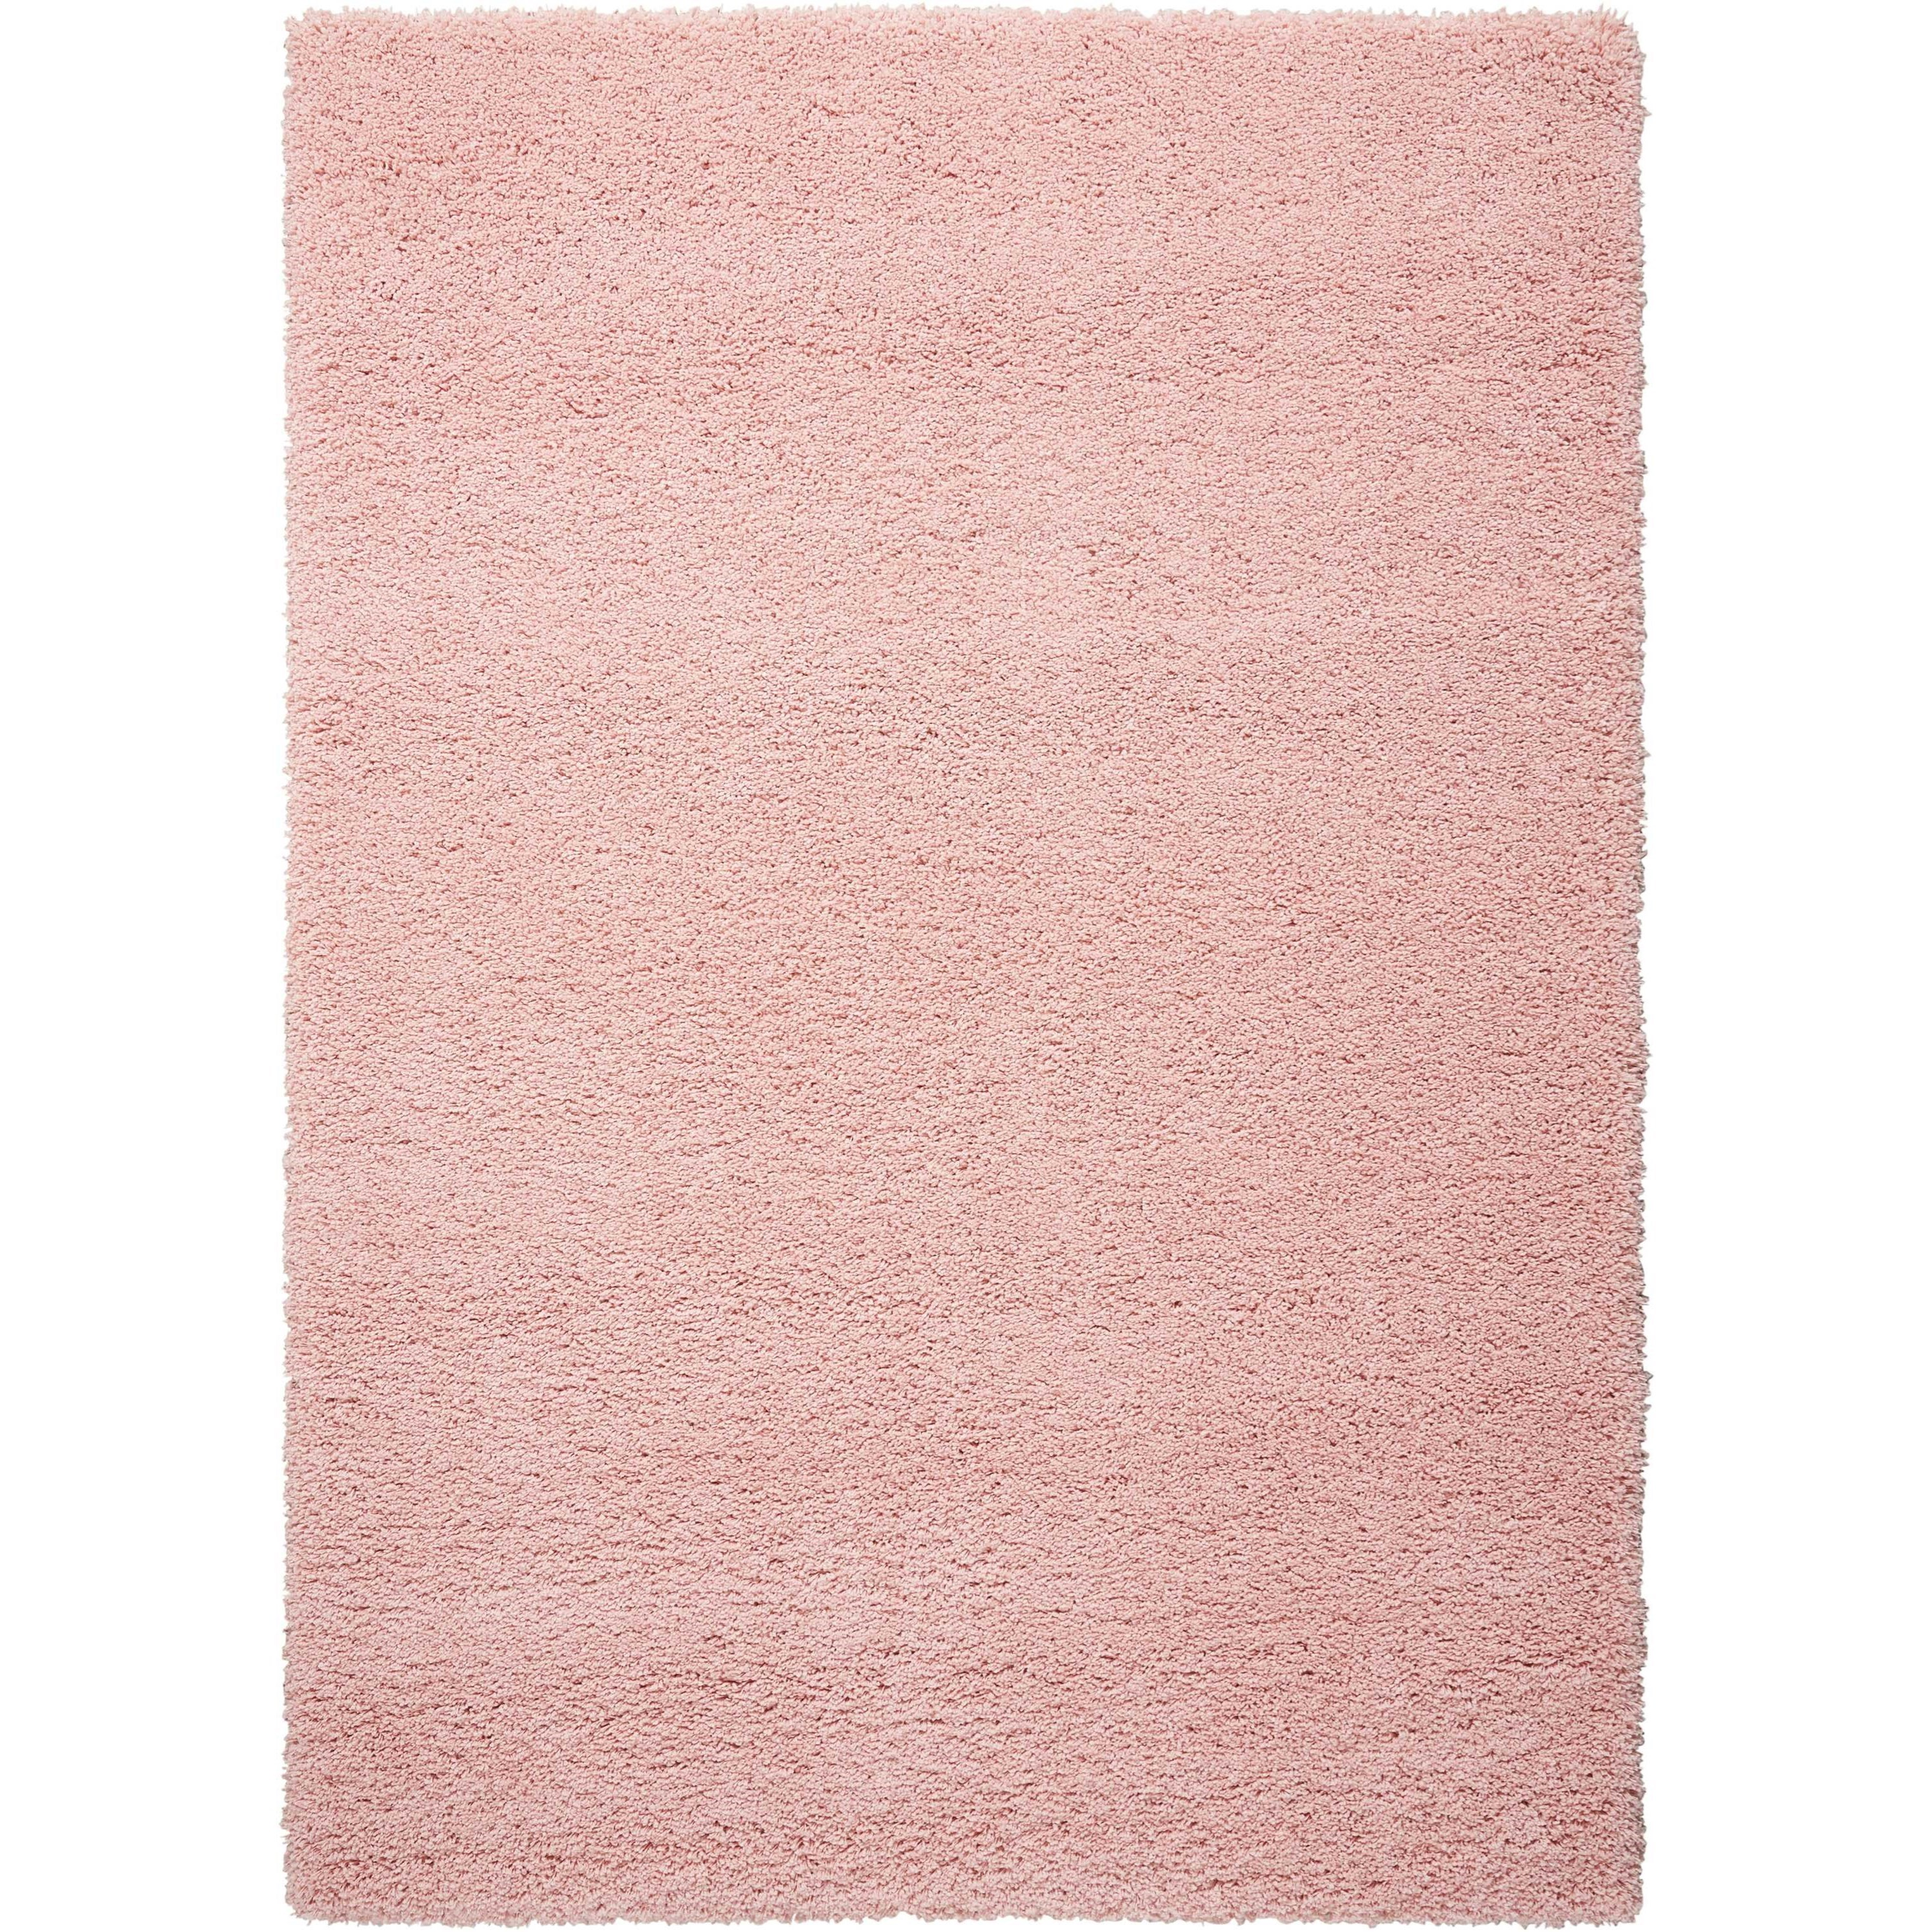 """Amore2 5'3"""" X 7'5"""" Blush Rug by Nourison at Home Collections Furniture"""